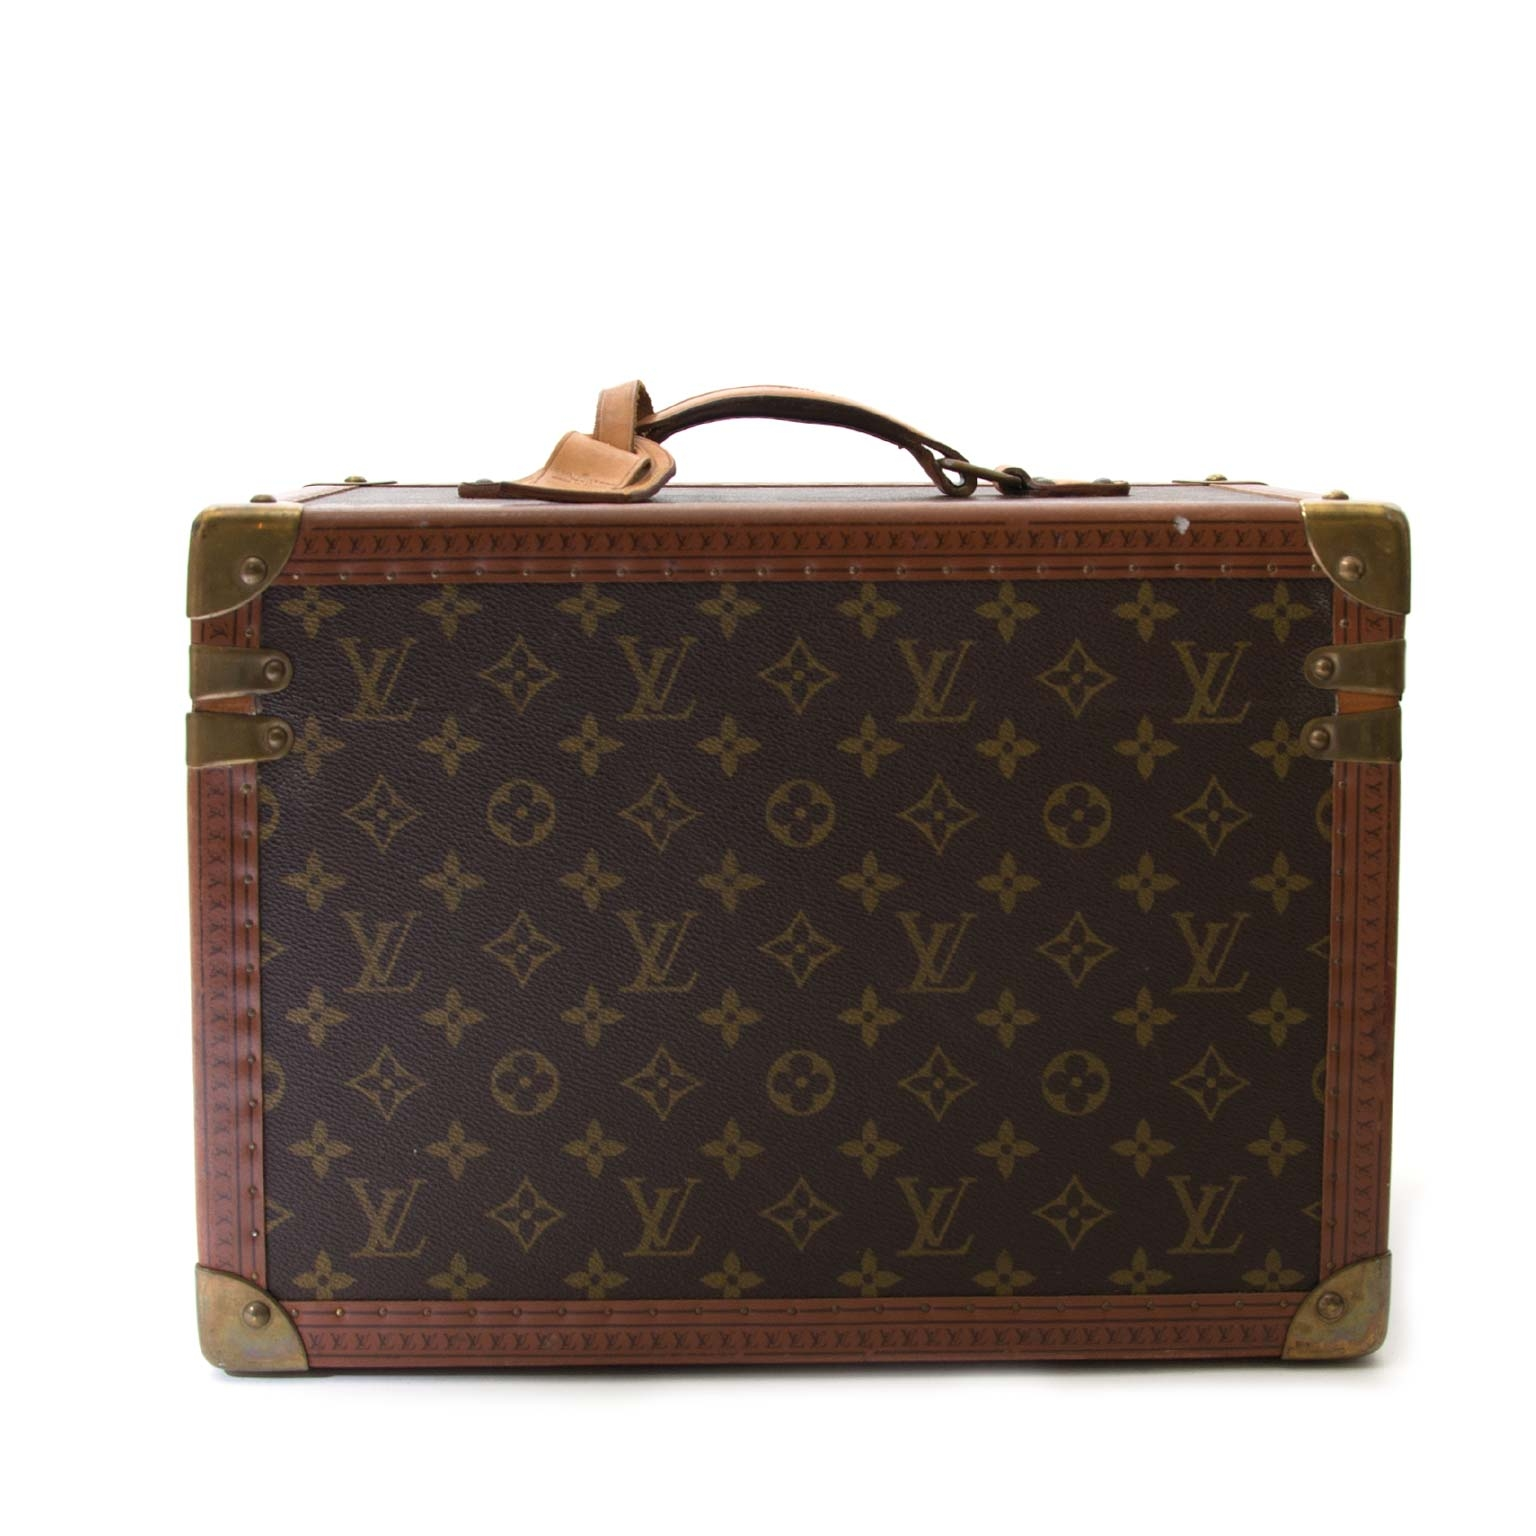 louis vuitton pharmacy box now for sale at labellov vintage fashion webshop belgium